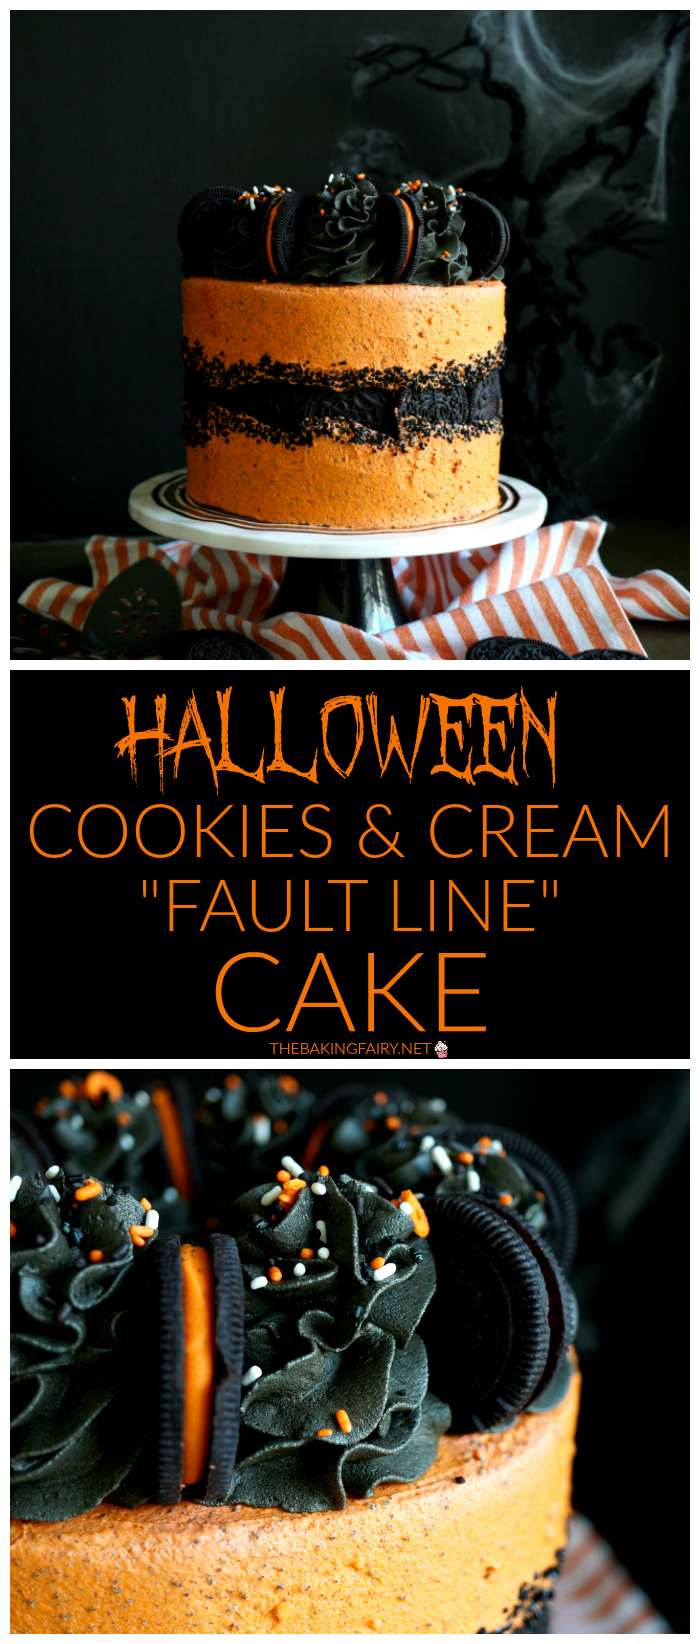 vegan Halloween cookies & cream fault line cake | The Baking Fairy #HalloweenTreatsWeek #ad